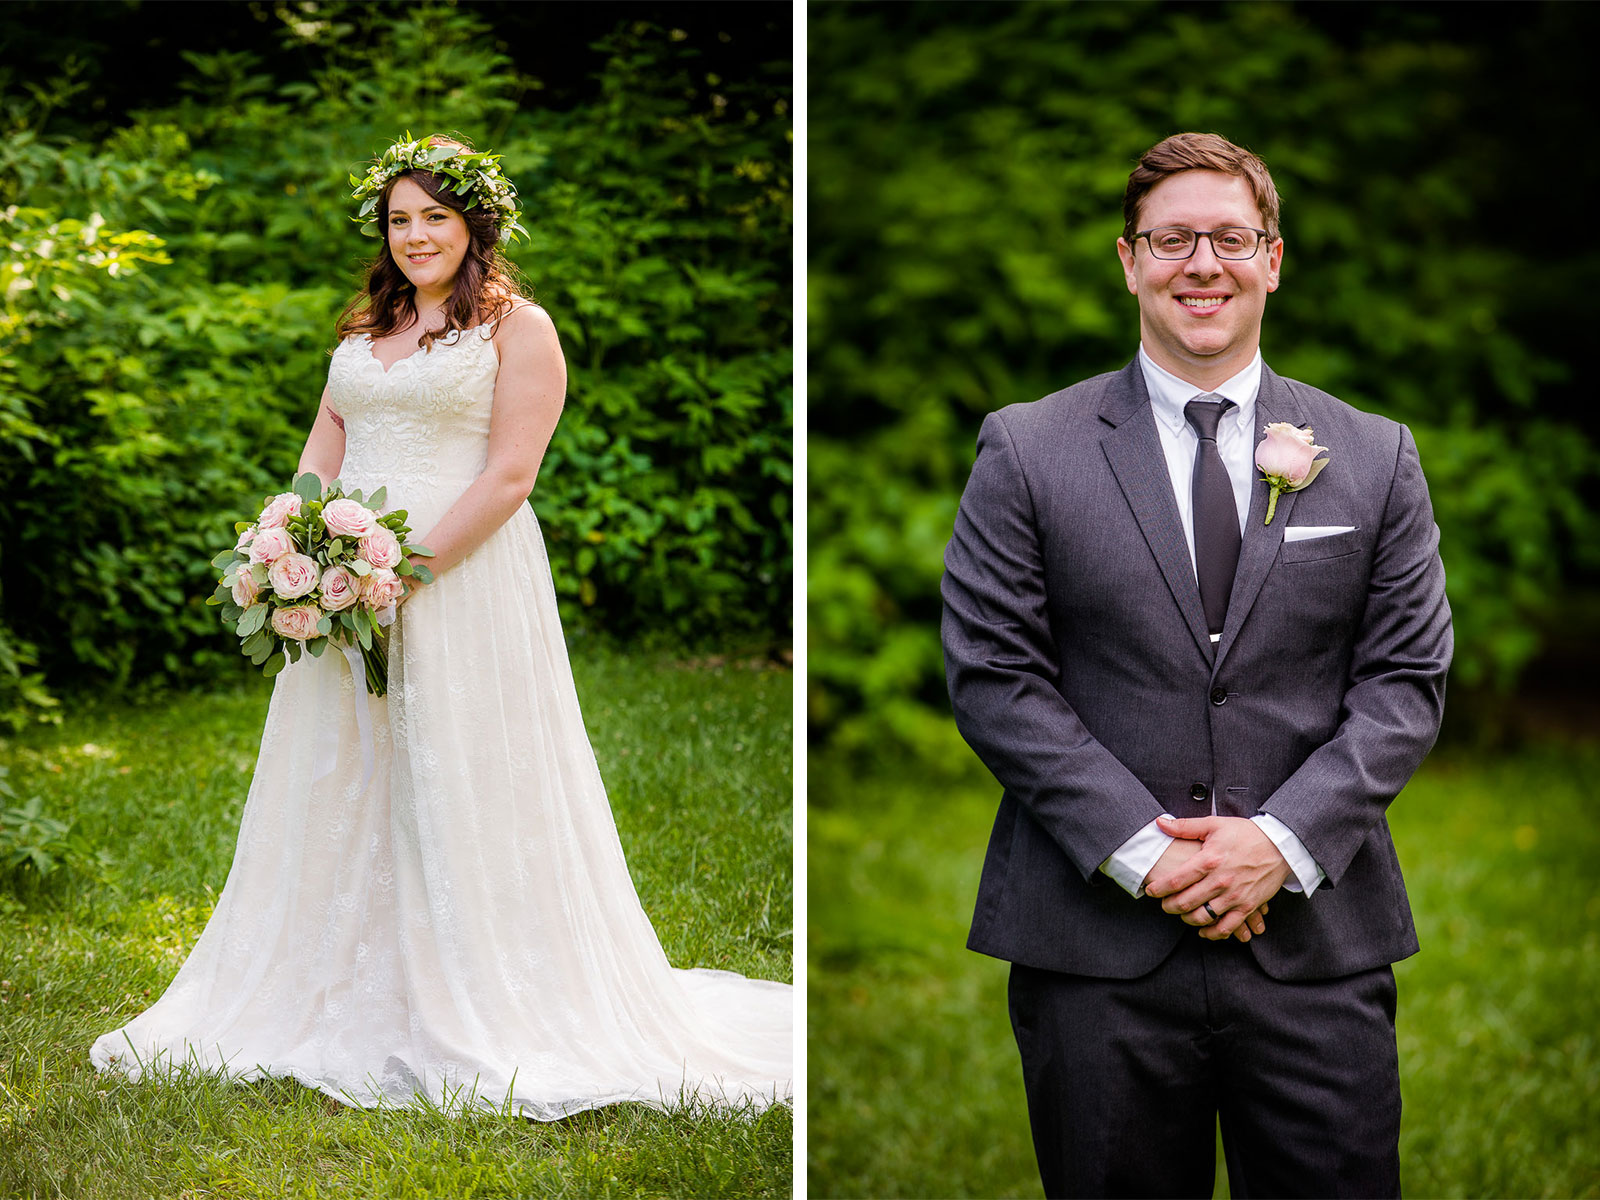 Eric_and_Christy_Photography_Blog_Wedding_Keara&Andy-33-34